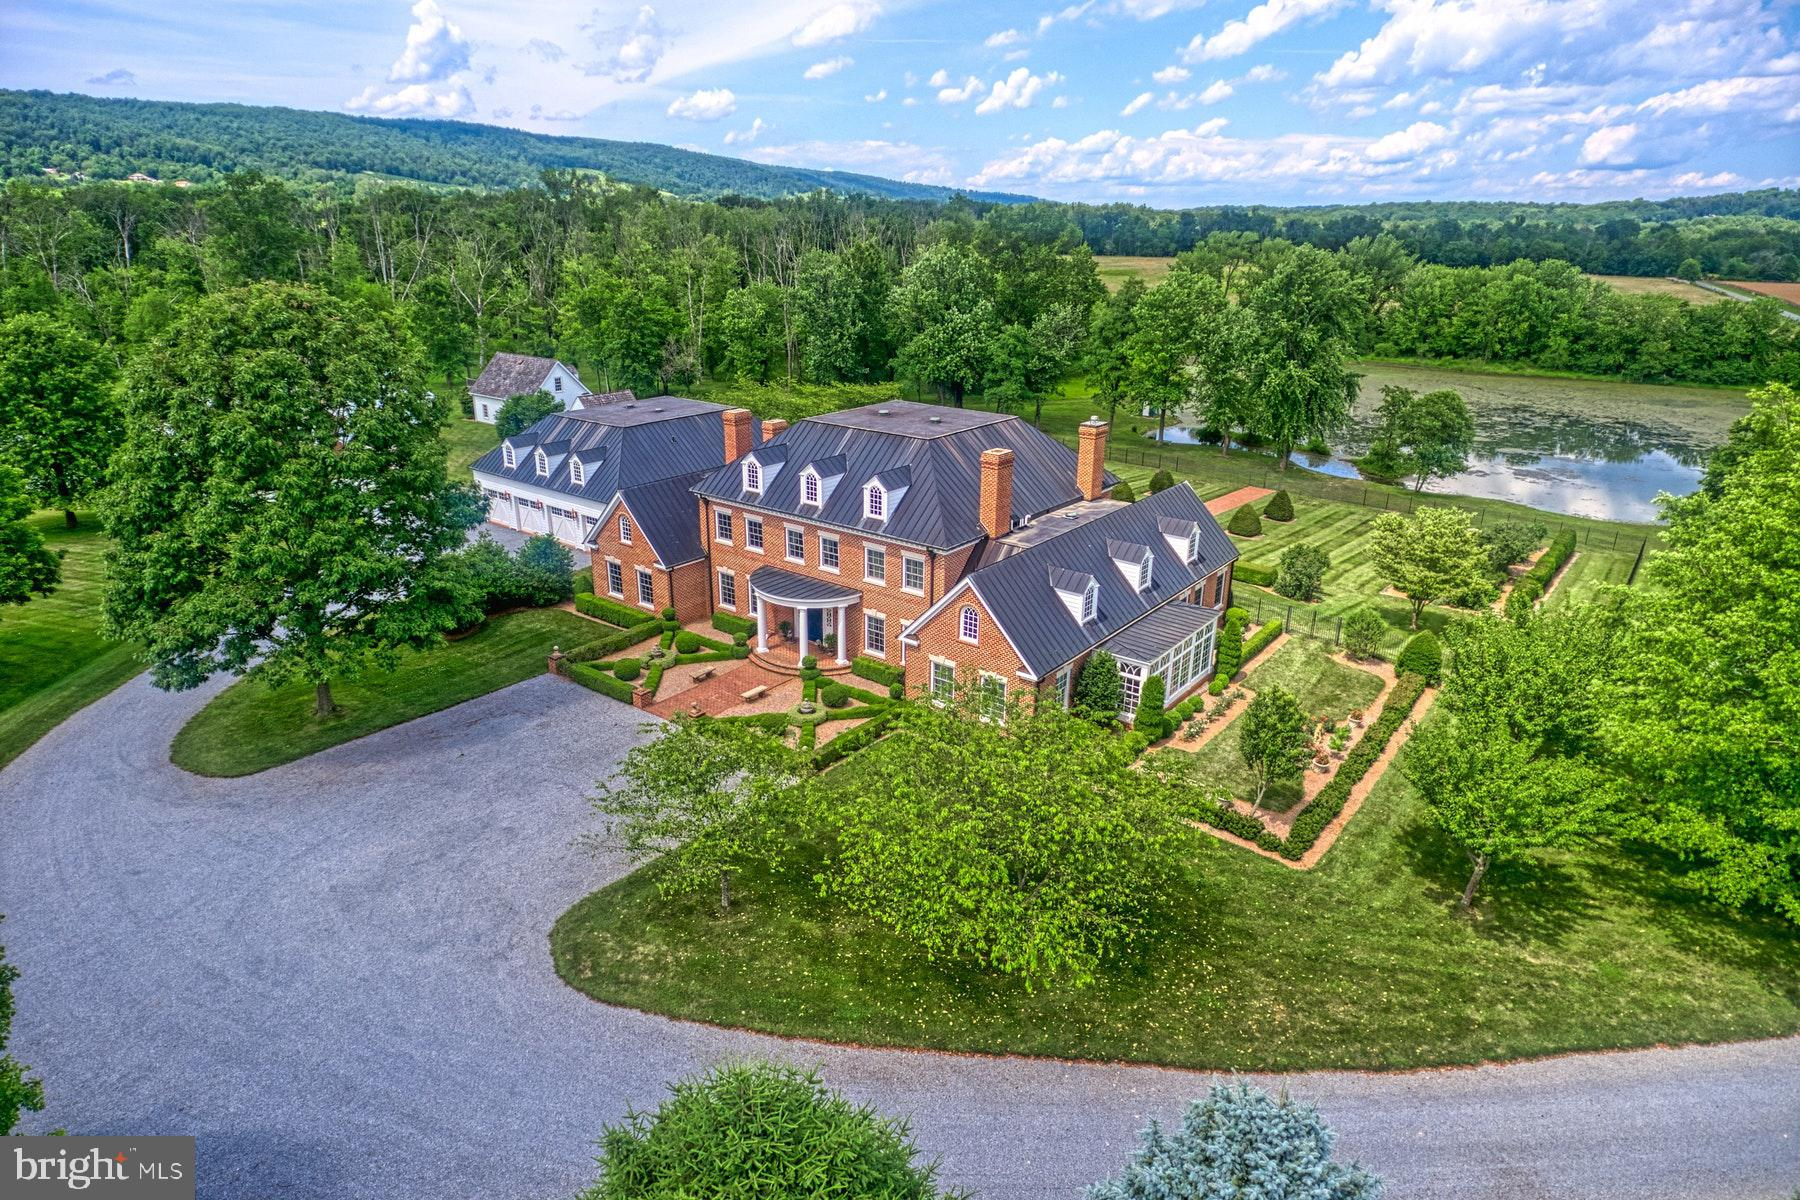 Welcome to Monte Subasio, a sophisticated estate on 23 lush acres in beautiful Bluemont, Virginia. T